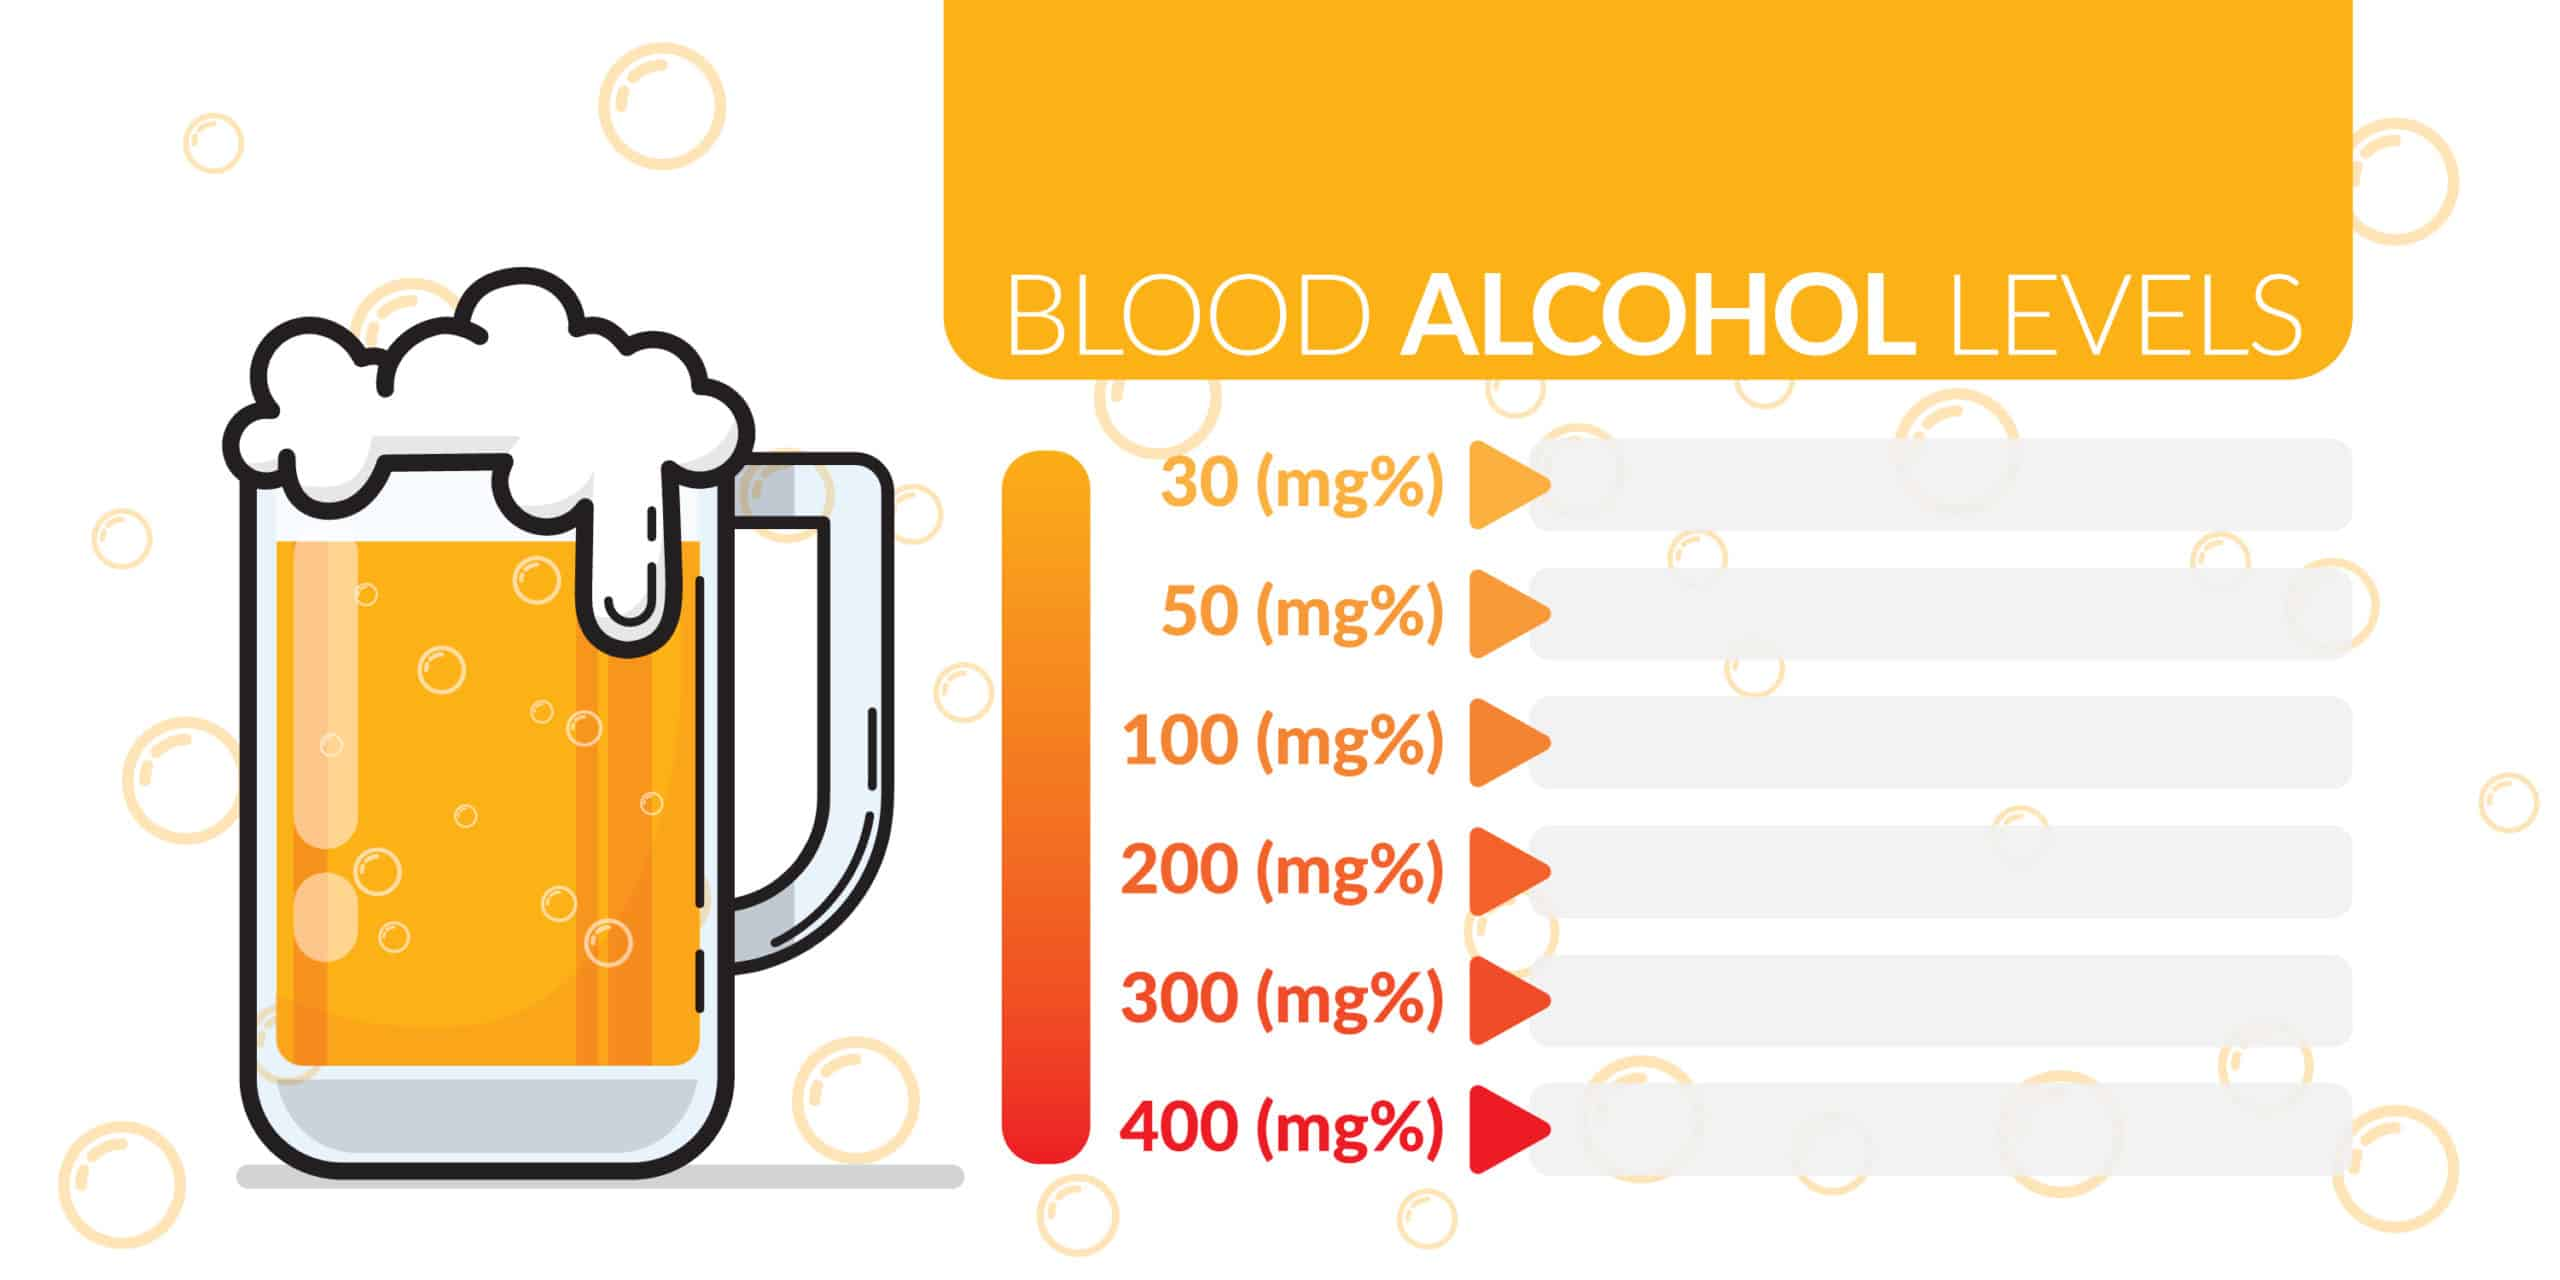 Blood alcohol